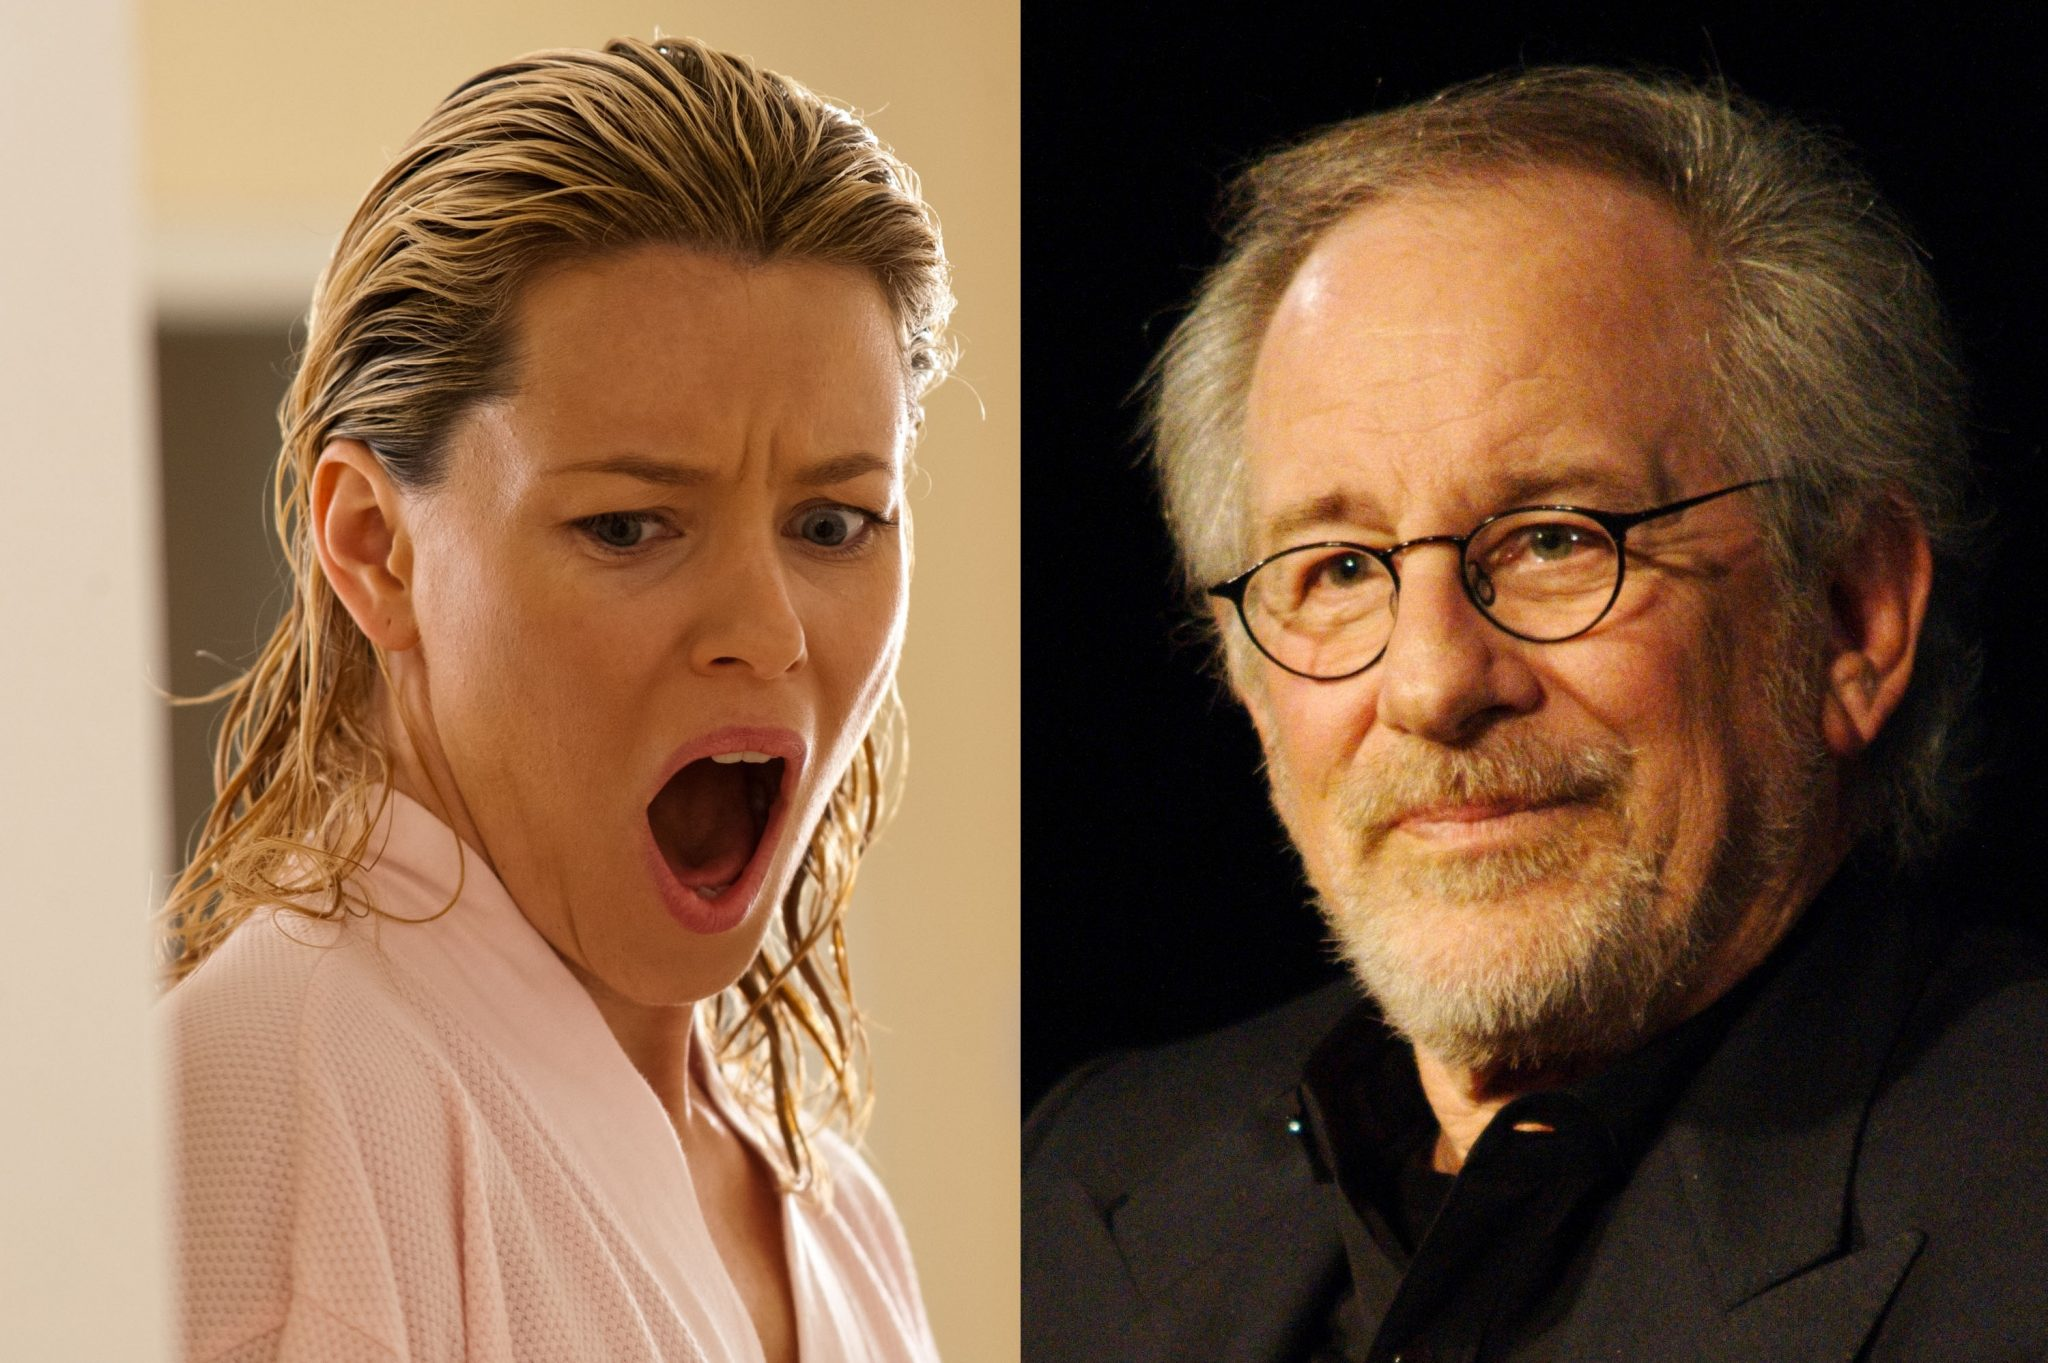 Banks: Spielberg Never Made Movie With Female Lead